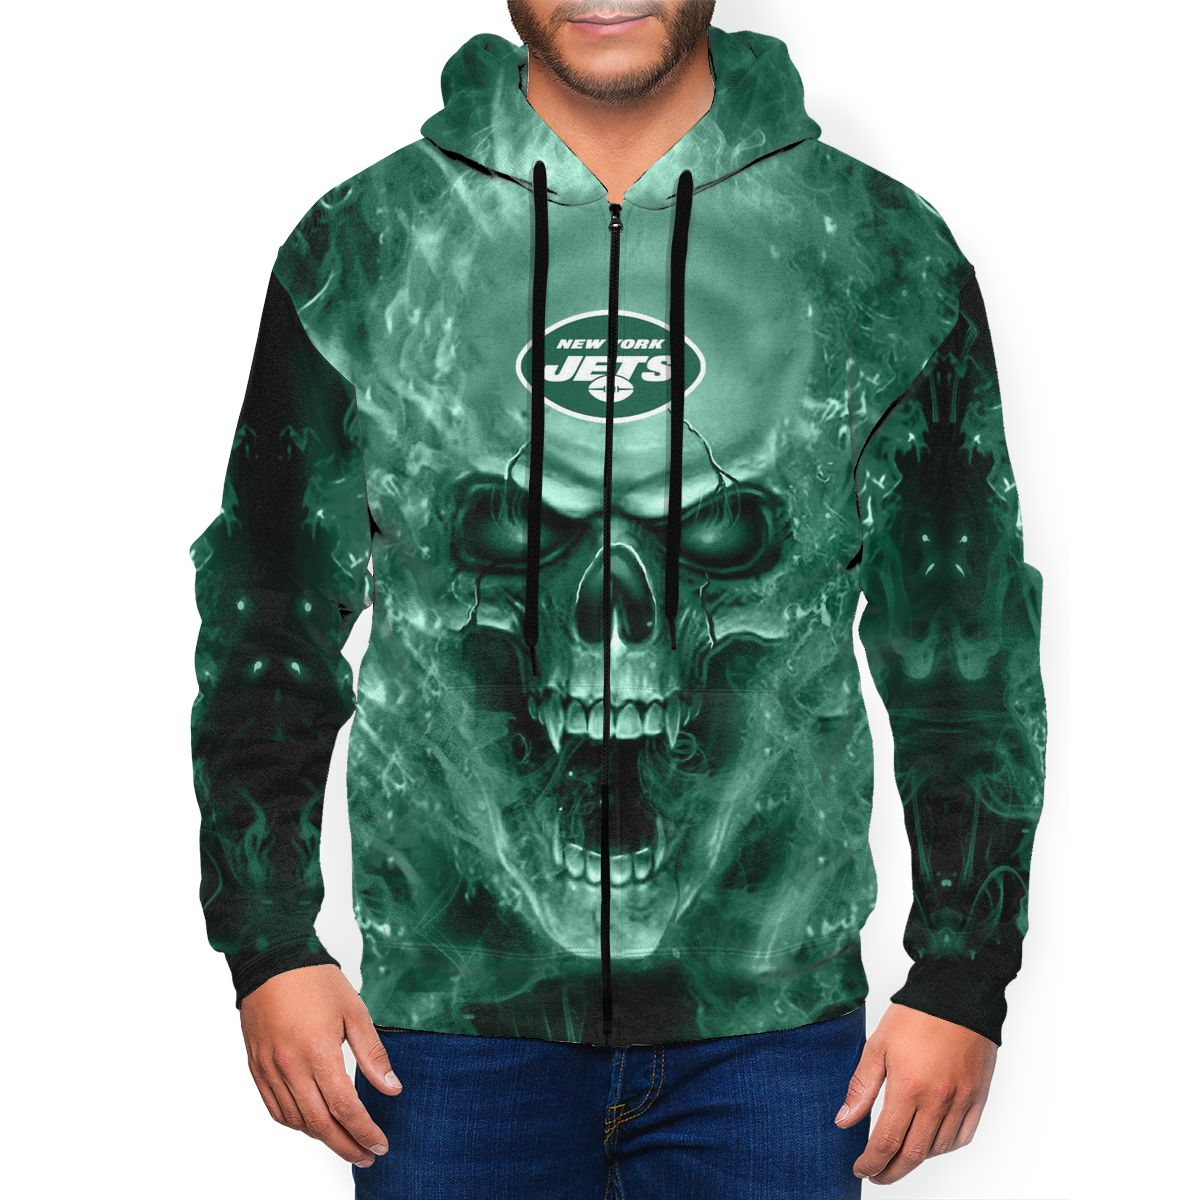 3D Skull Jets Men's Zip Hooded Sweatshirt